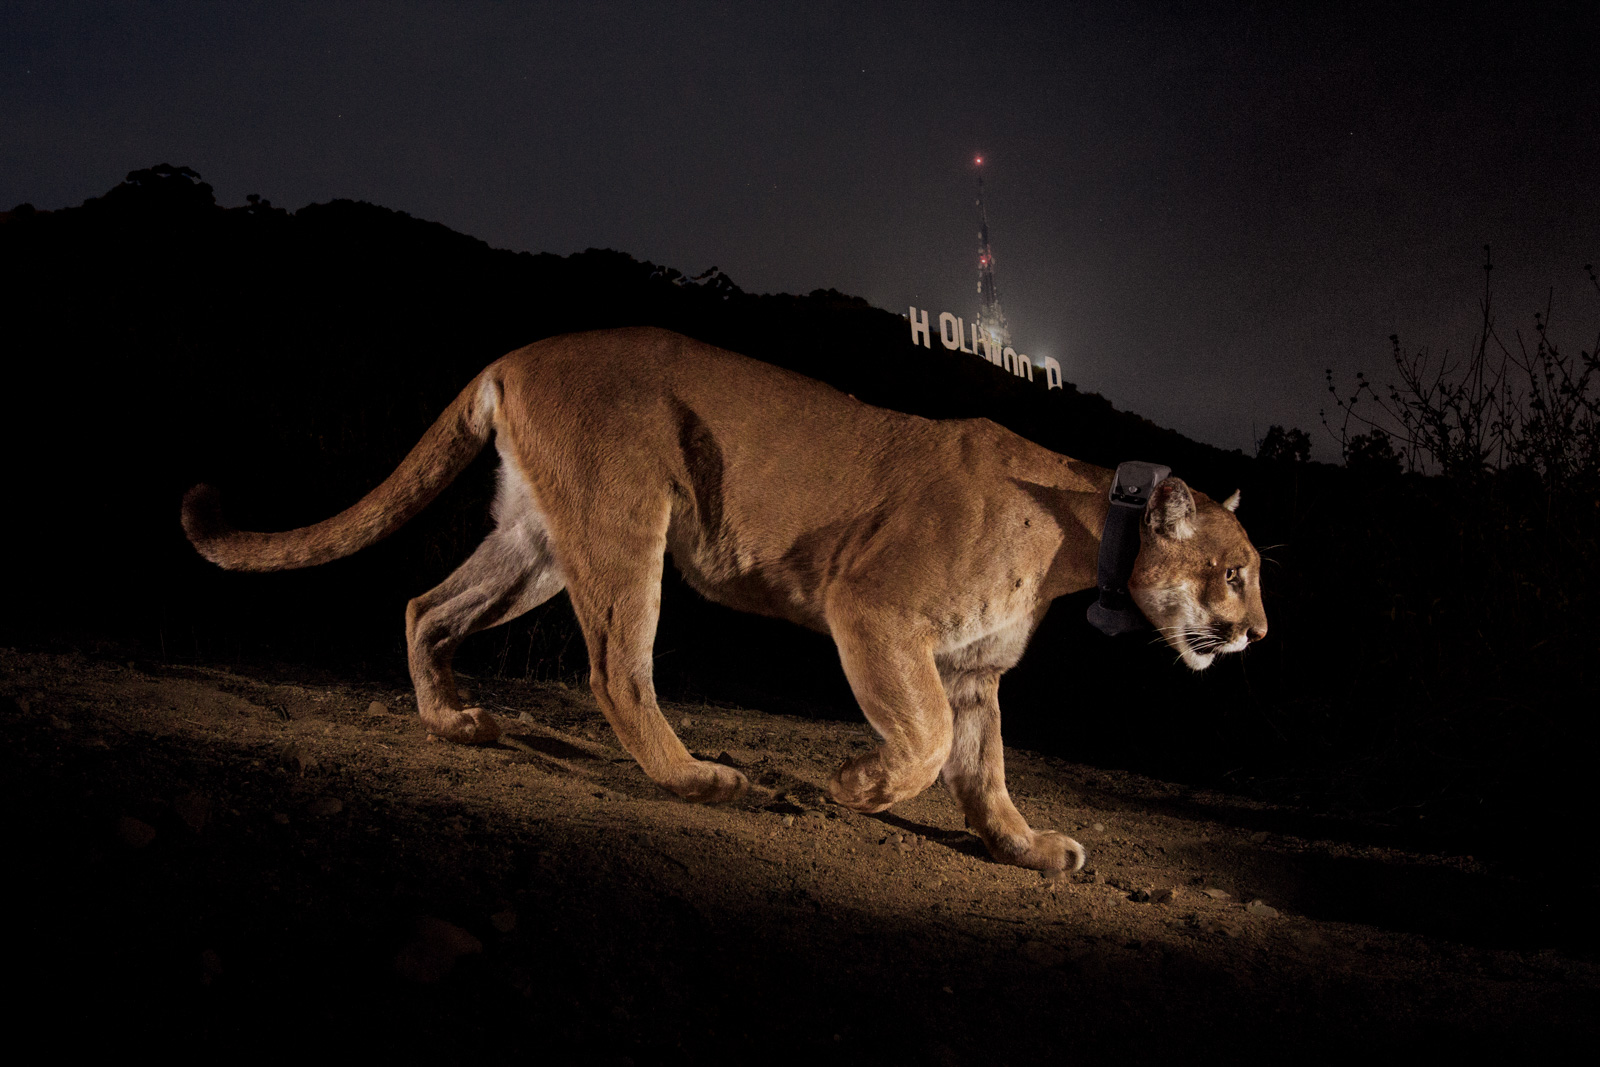 A remote camera captures a radio-collared cougar in Griffith Park. © Steve Winter